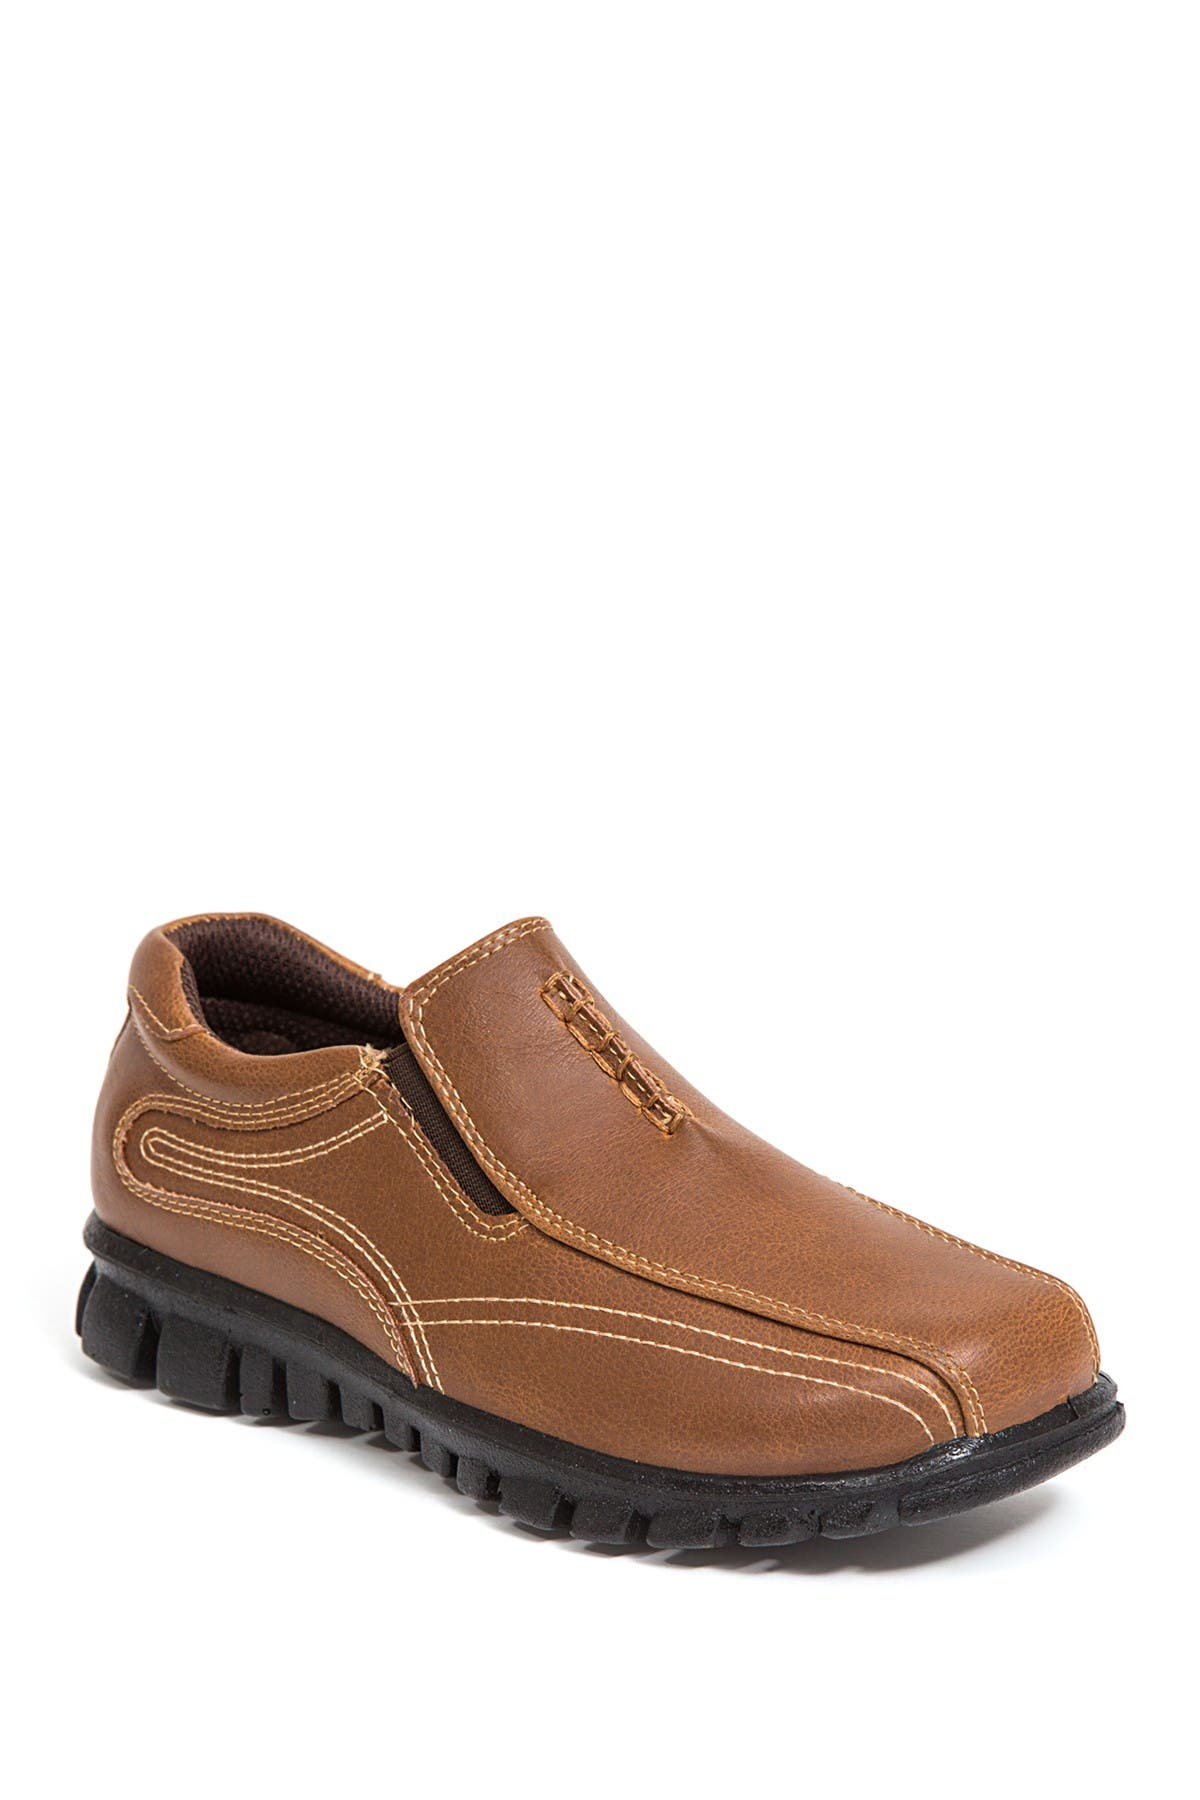 Image of Deer Stags Stadium Loafer - Wide Width Available